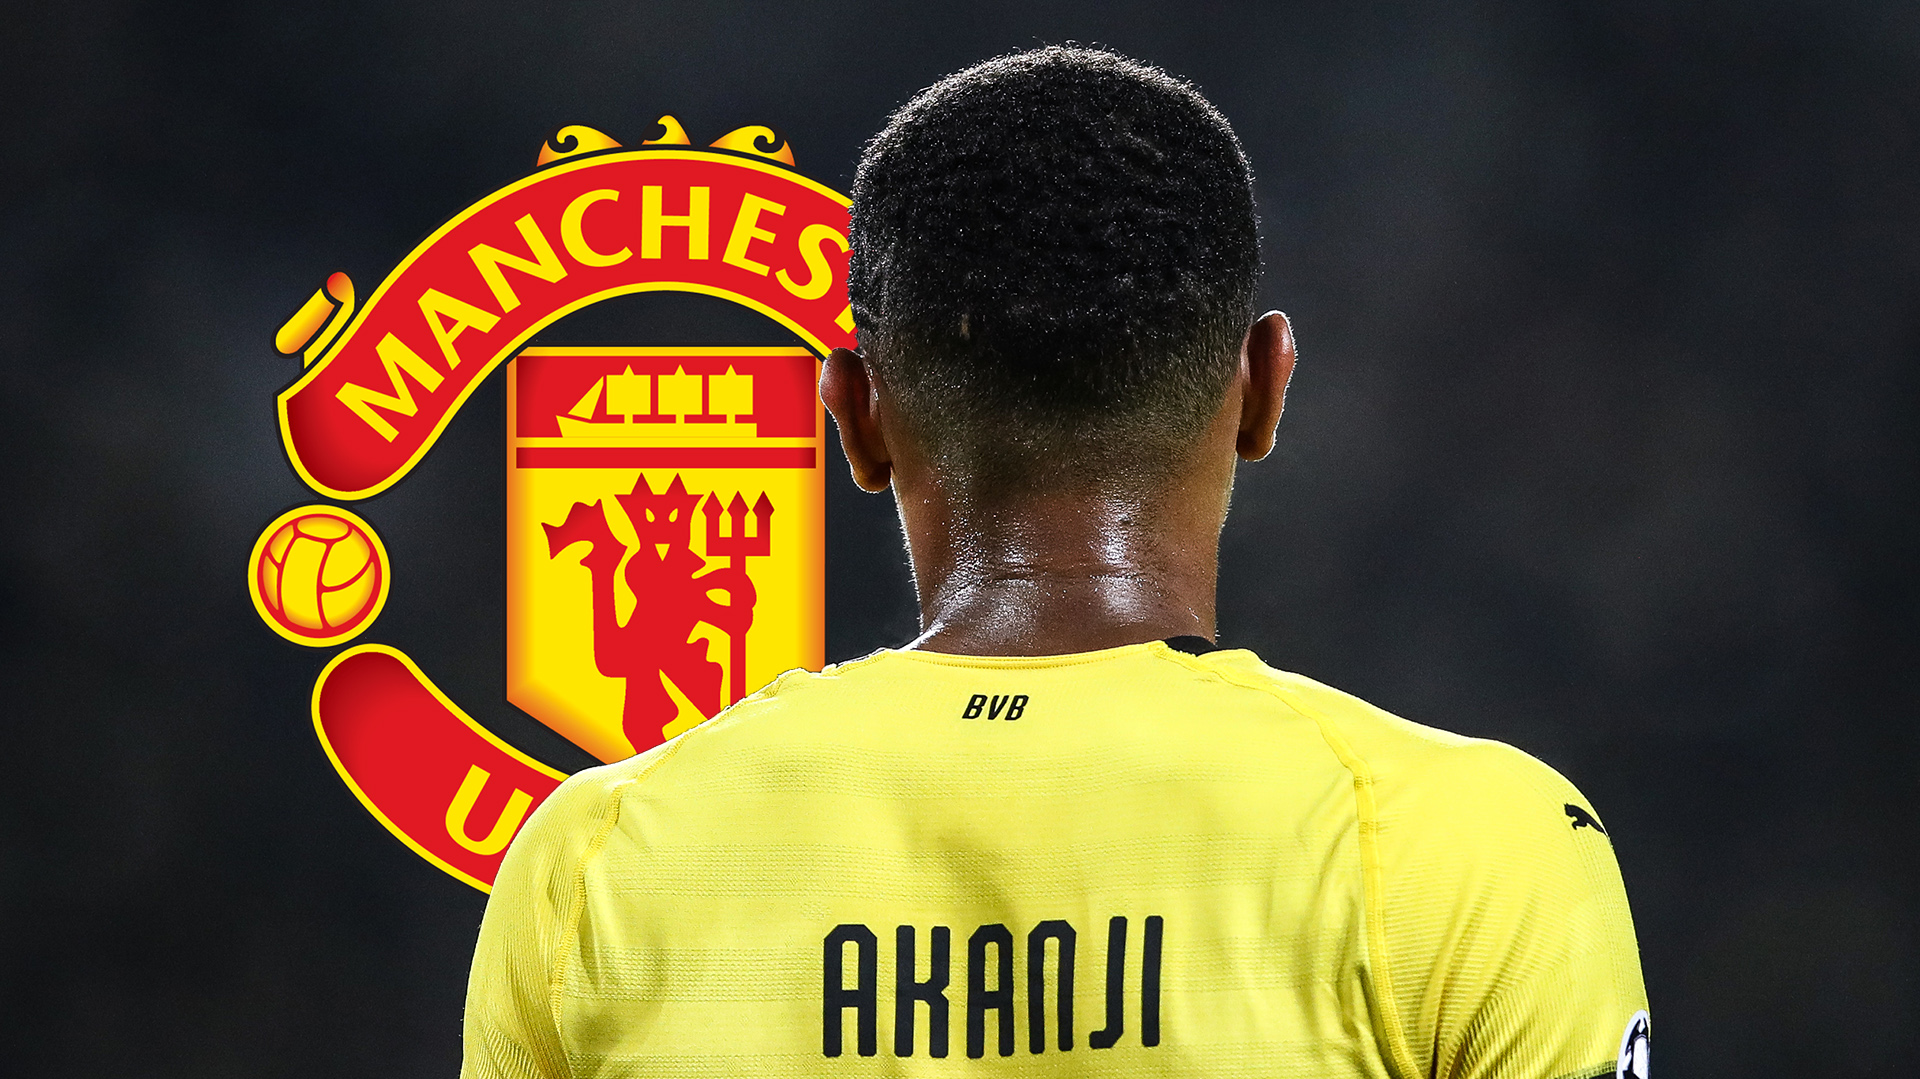 Manuel Akanji reveals he dreams of joining Red Devils